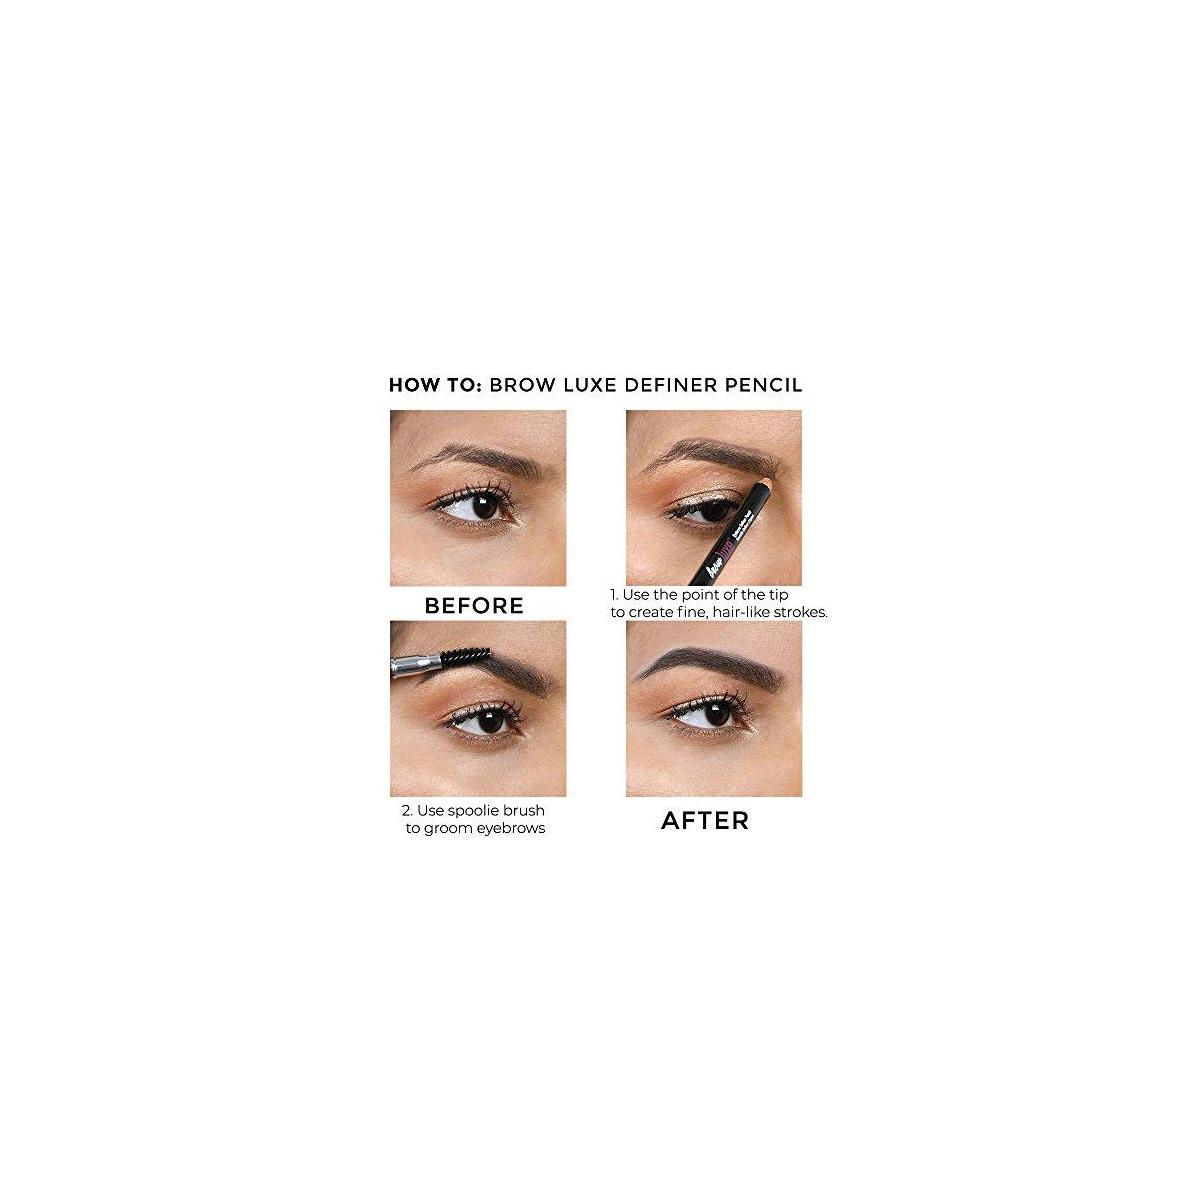 Brow Luxe Definer Pencil by True + Luscious - Vegan, Paraben Free, Cruelty Free Eyebrow Pencil with Sweat-Proof Formula - 0.07 oz (Shade: Caramel)